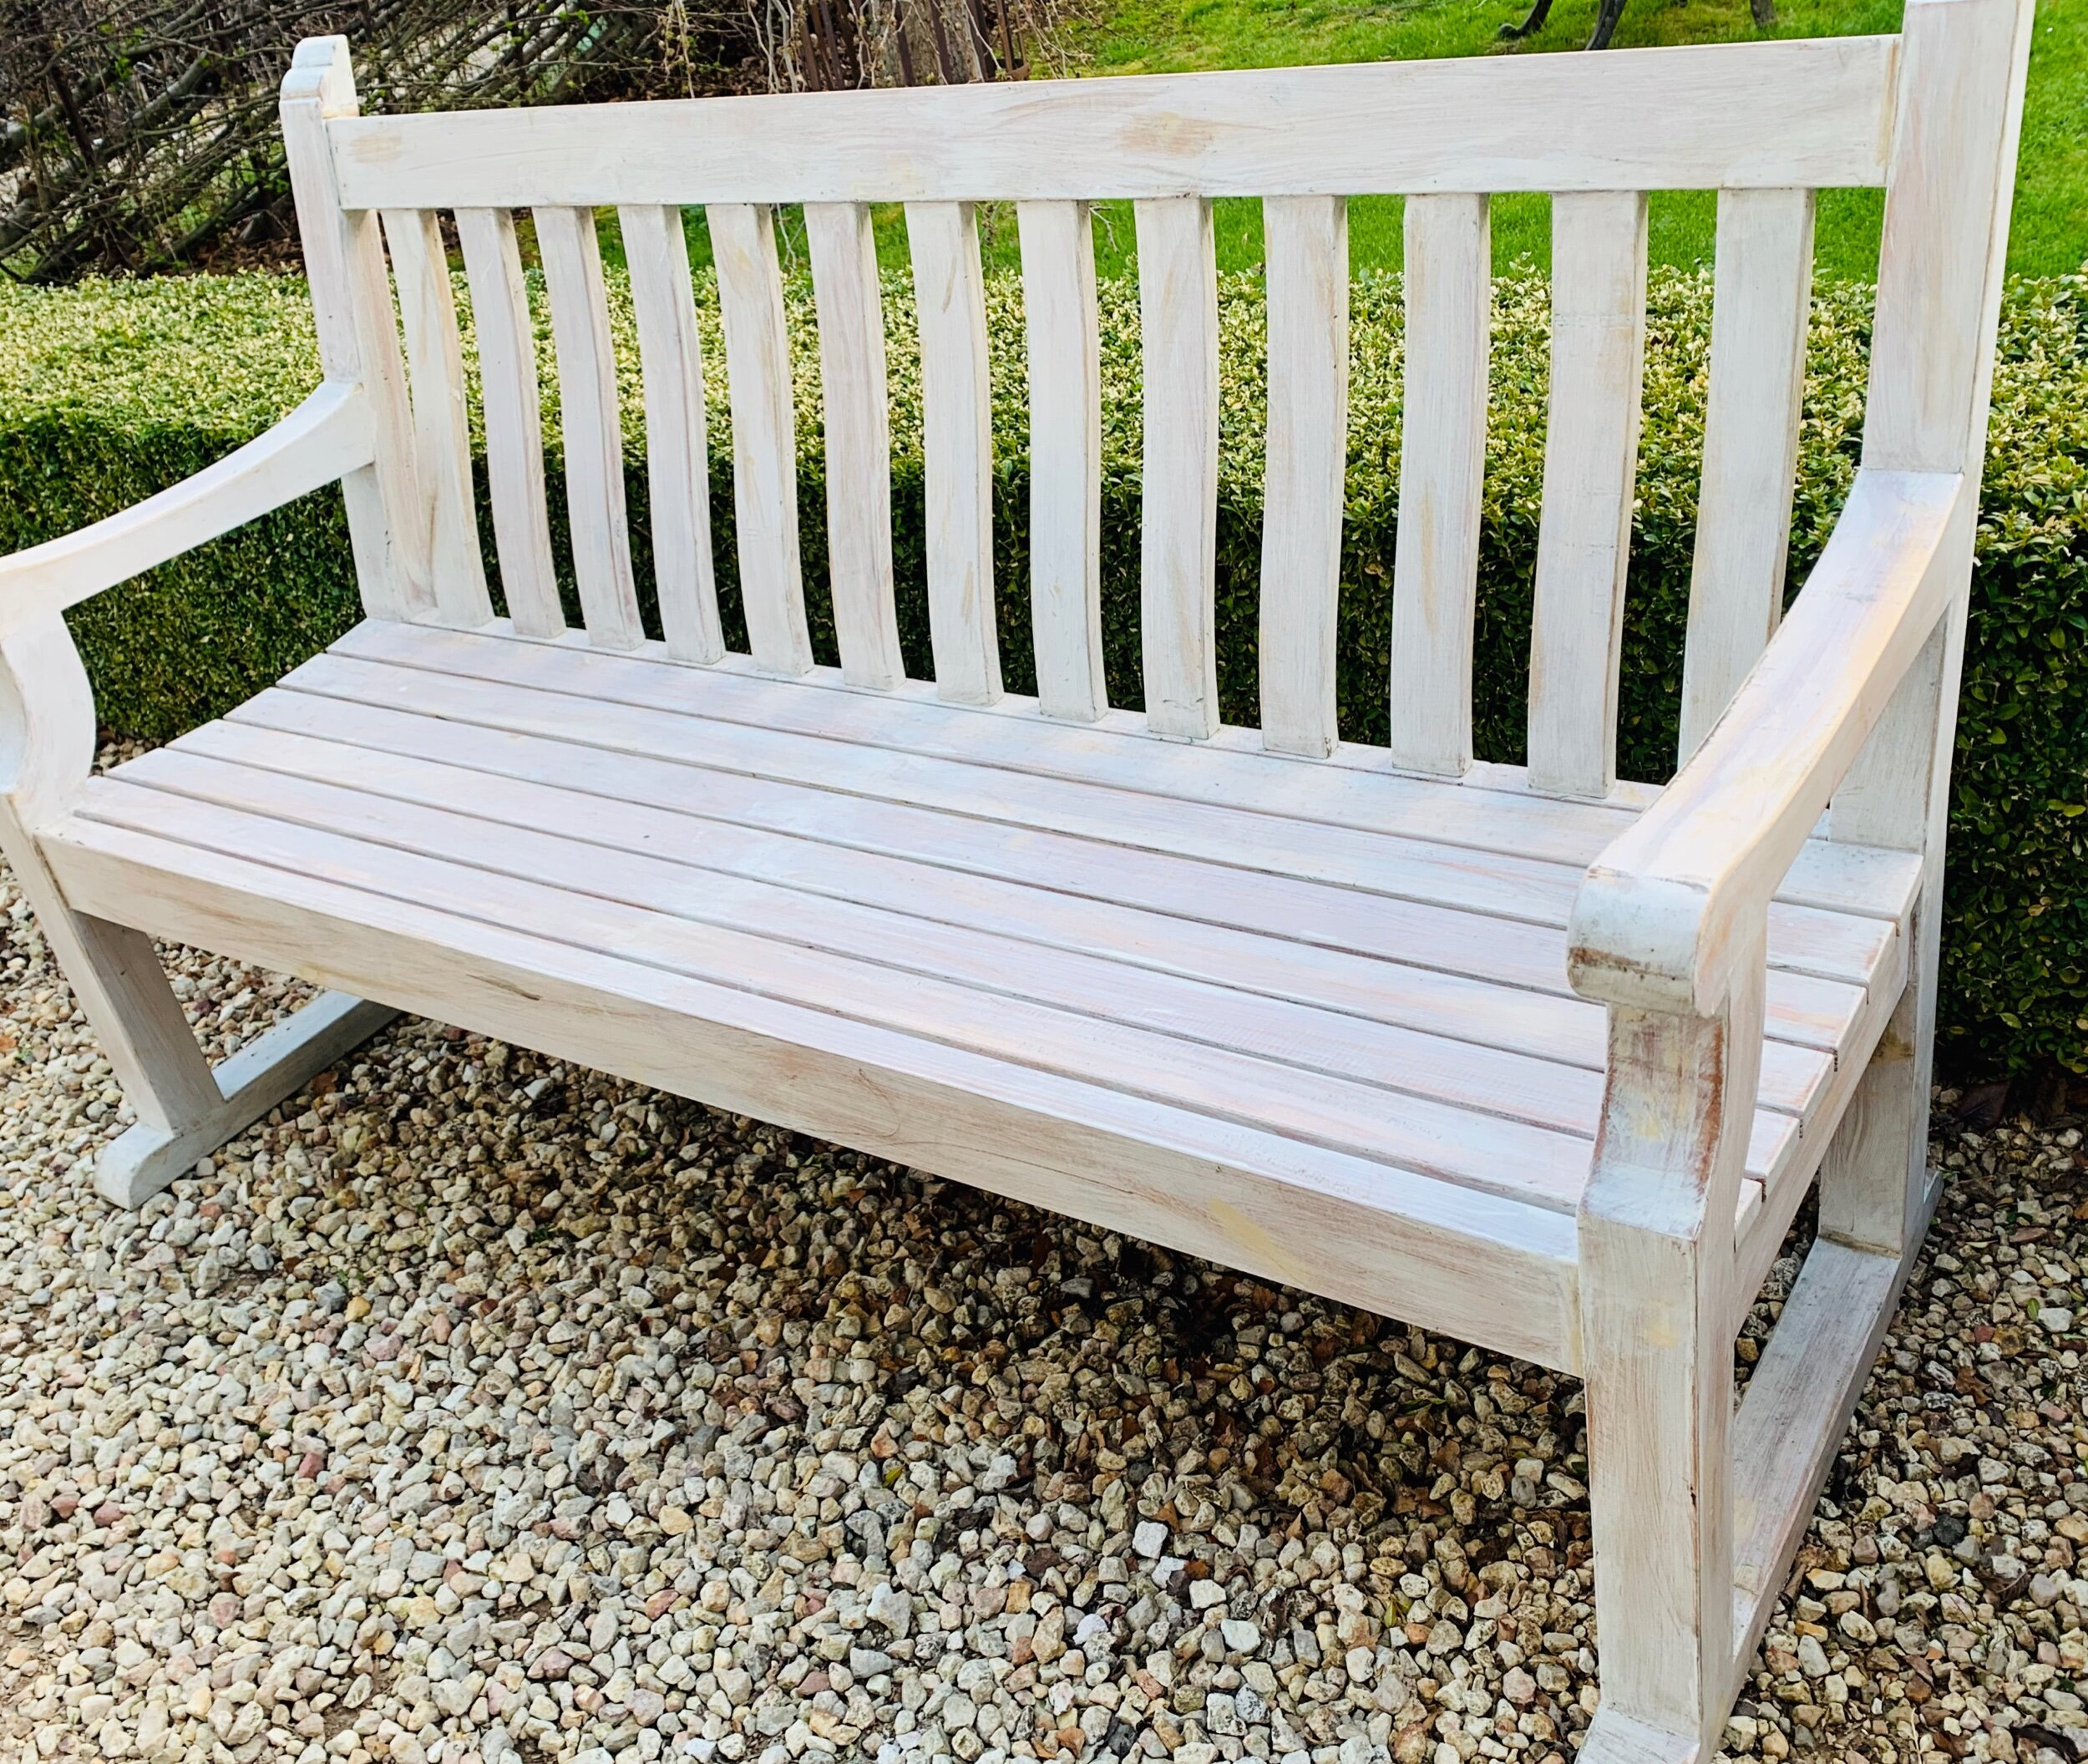 SB. Kensington limed timber garden seat  $995 Out of stock